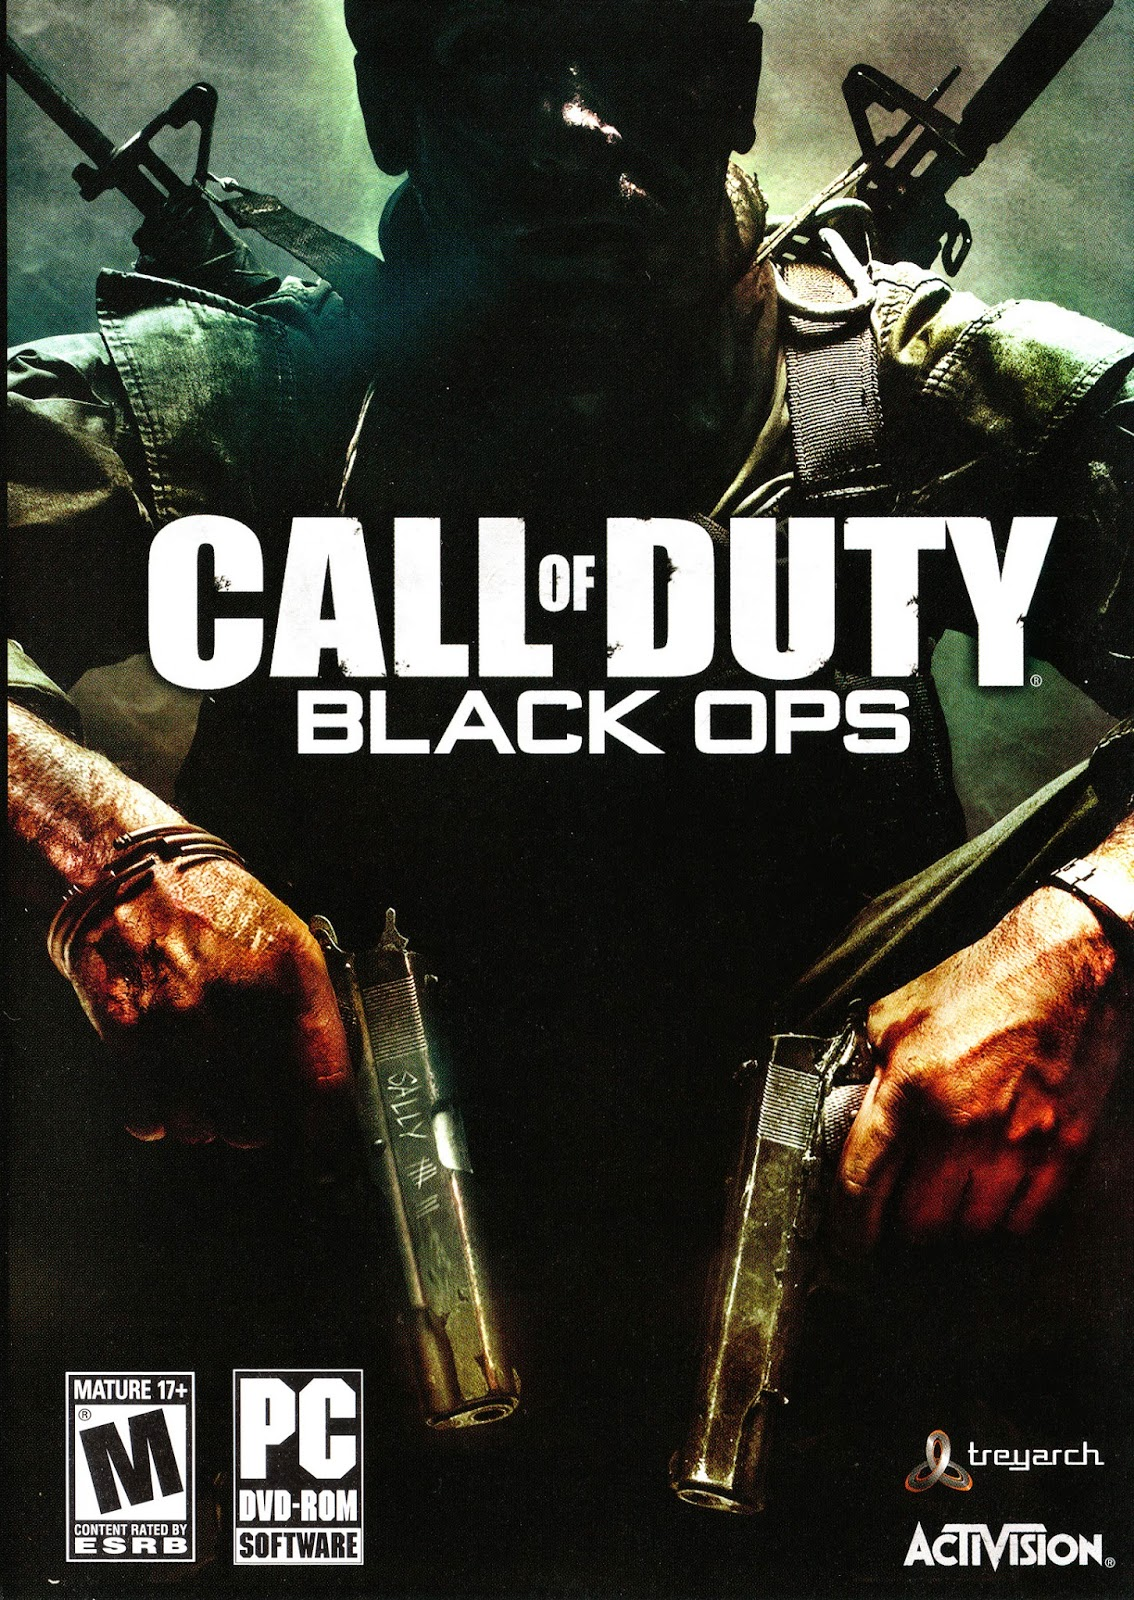 CALL OF DUTY BLACK OPS SP+MP